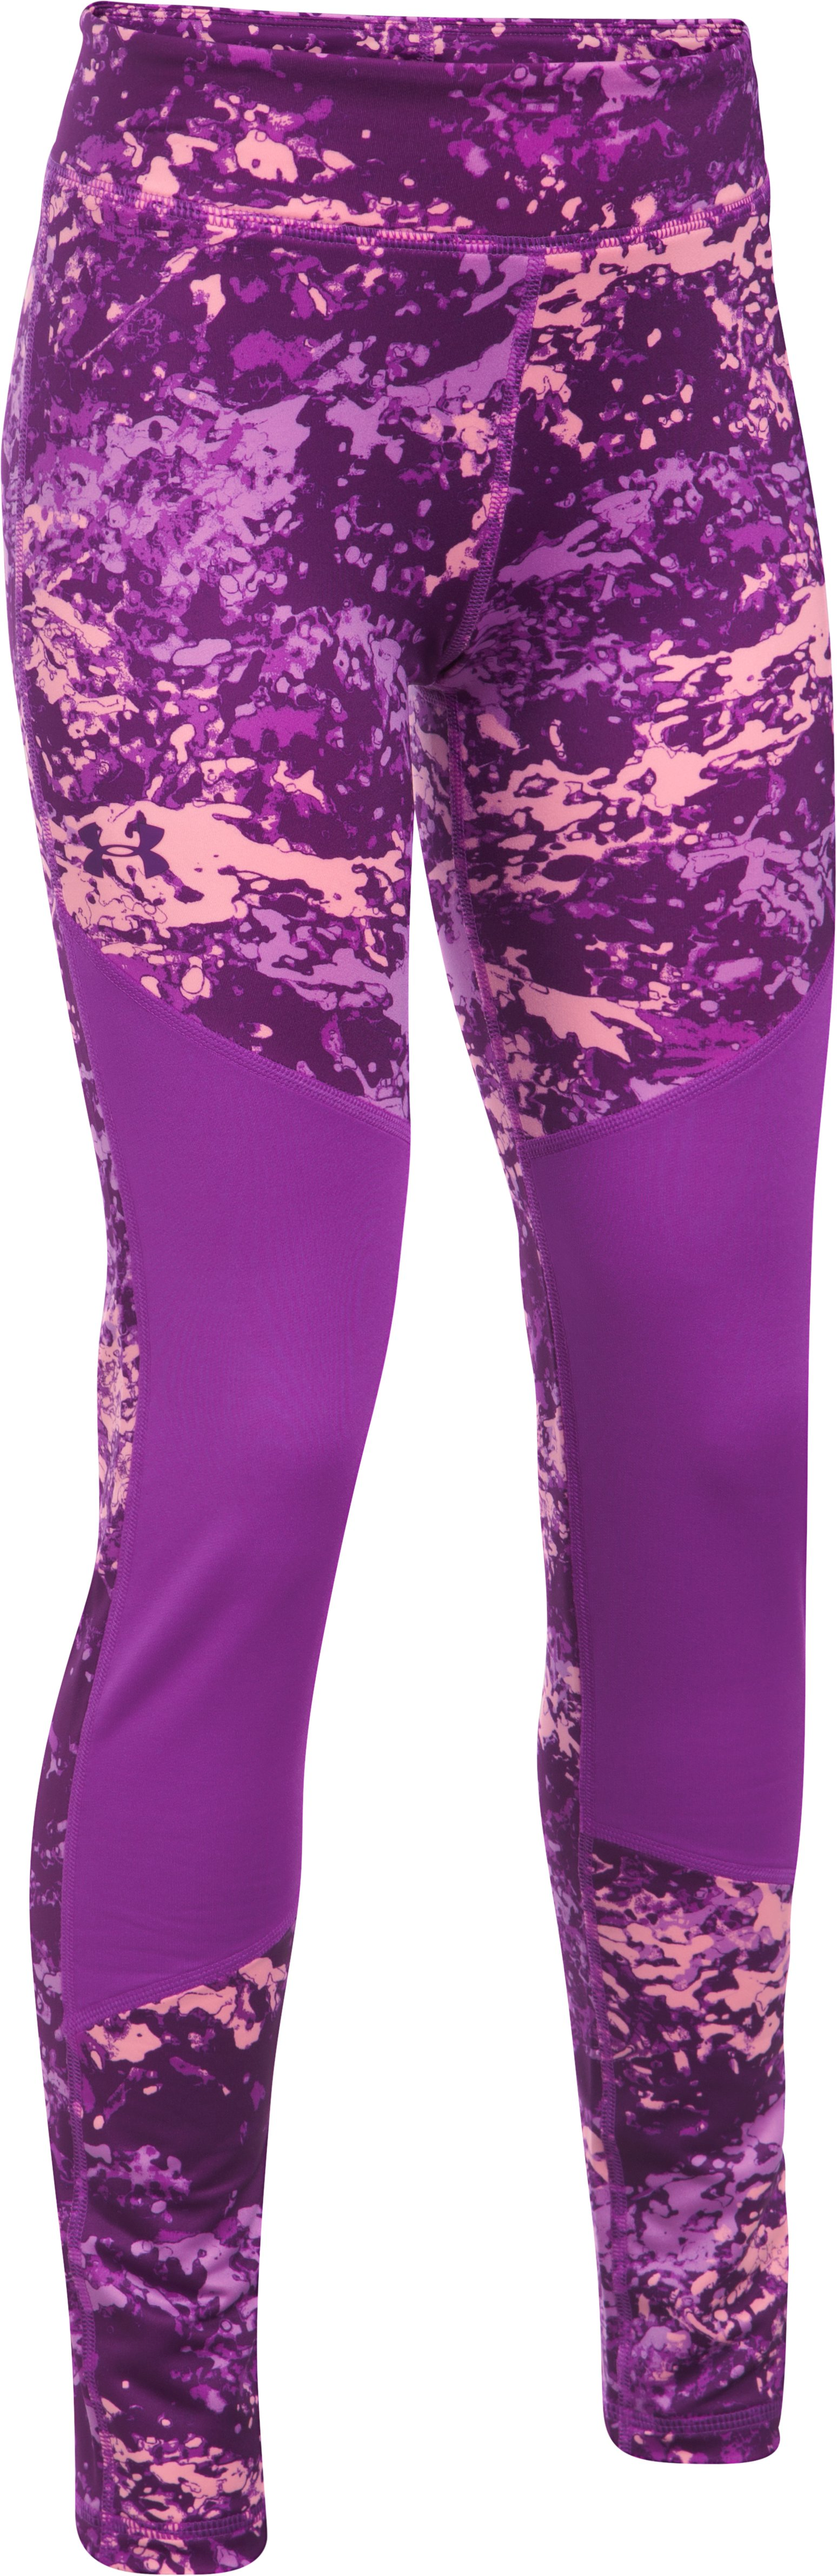 Girls' ColdGear® Printed Leggings, PURPLE RAVE,